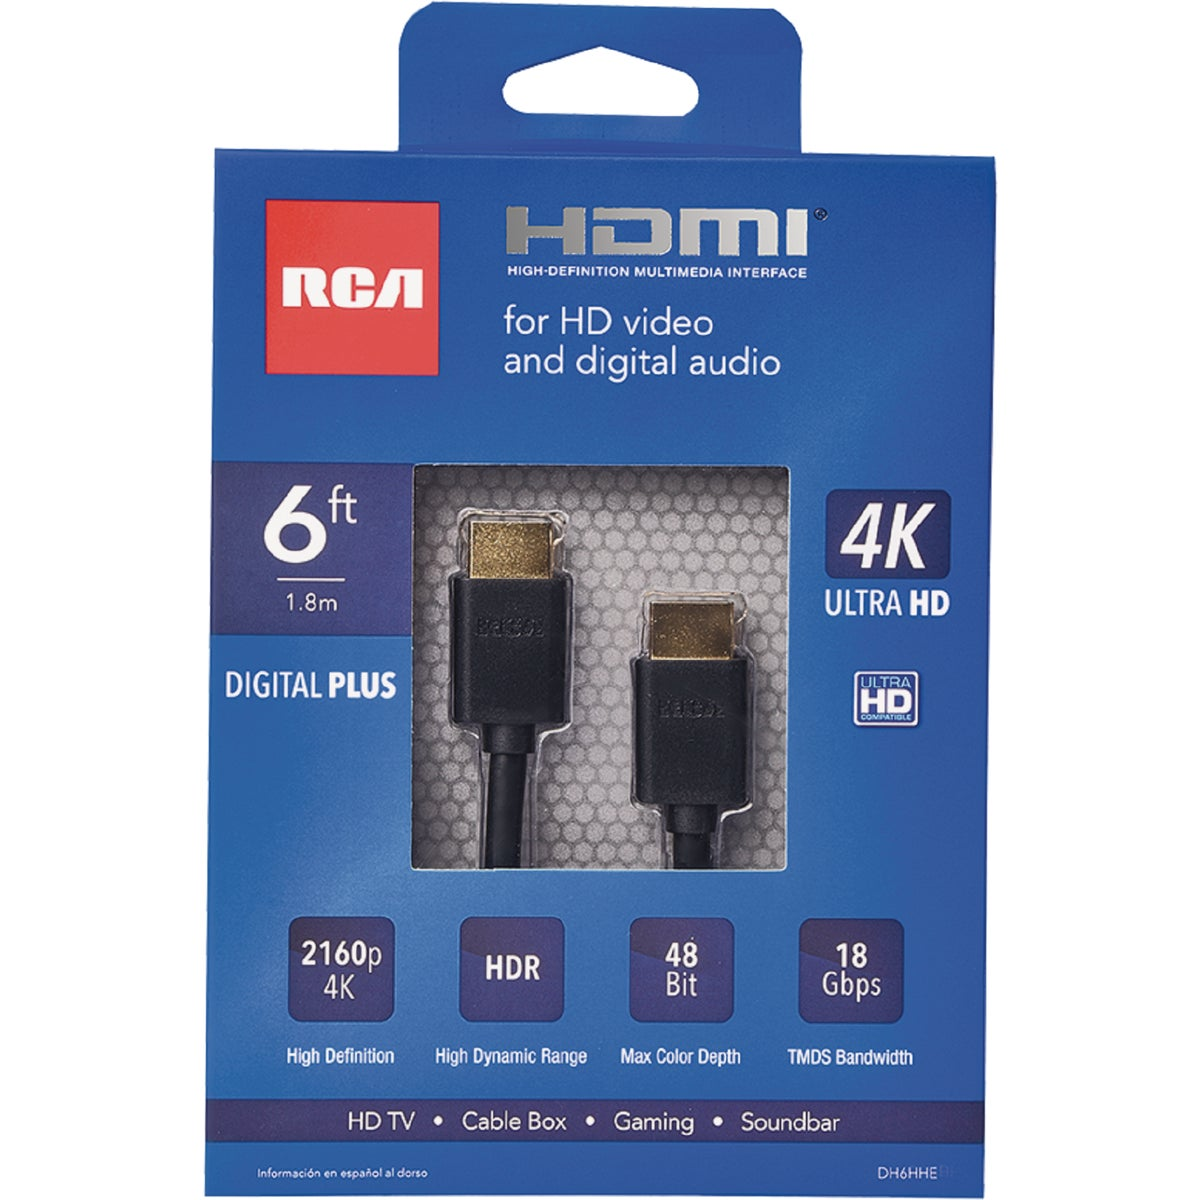 6' HDMI CABLE - DH6HHF by Audiovox Accessories